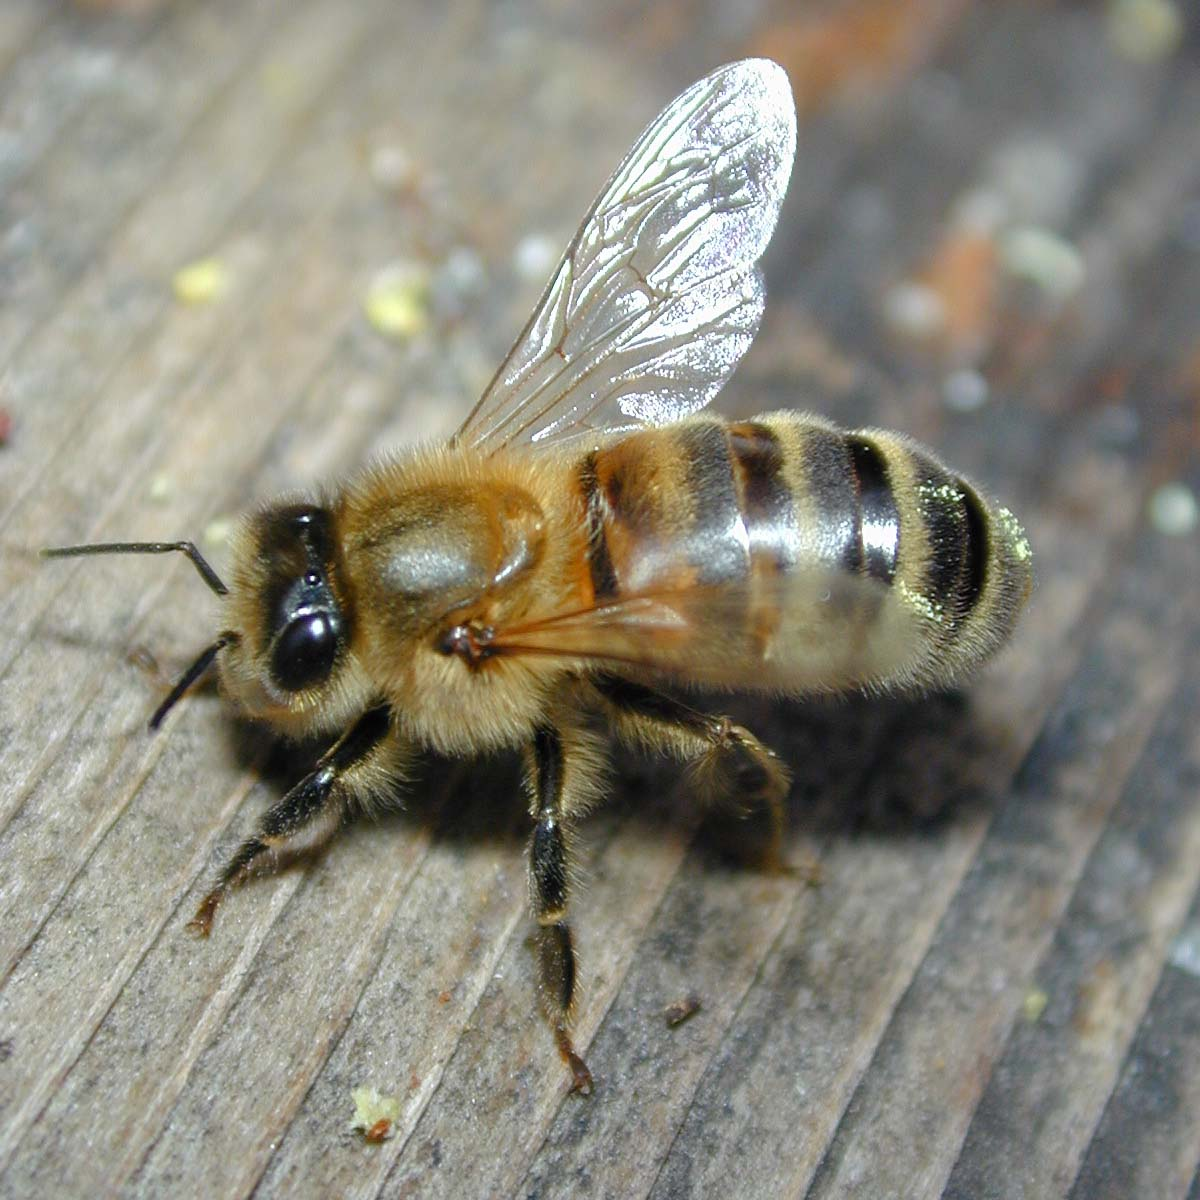 http://www.wmconnolley.org.uk/bees/DSCN6624-bee-close_1200x1200.JPG